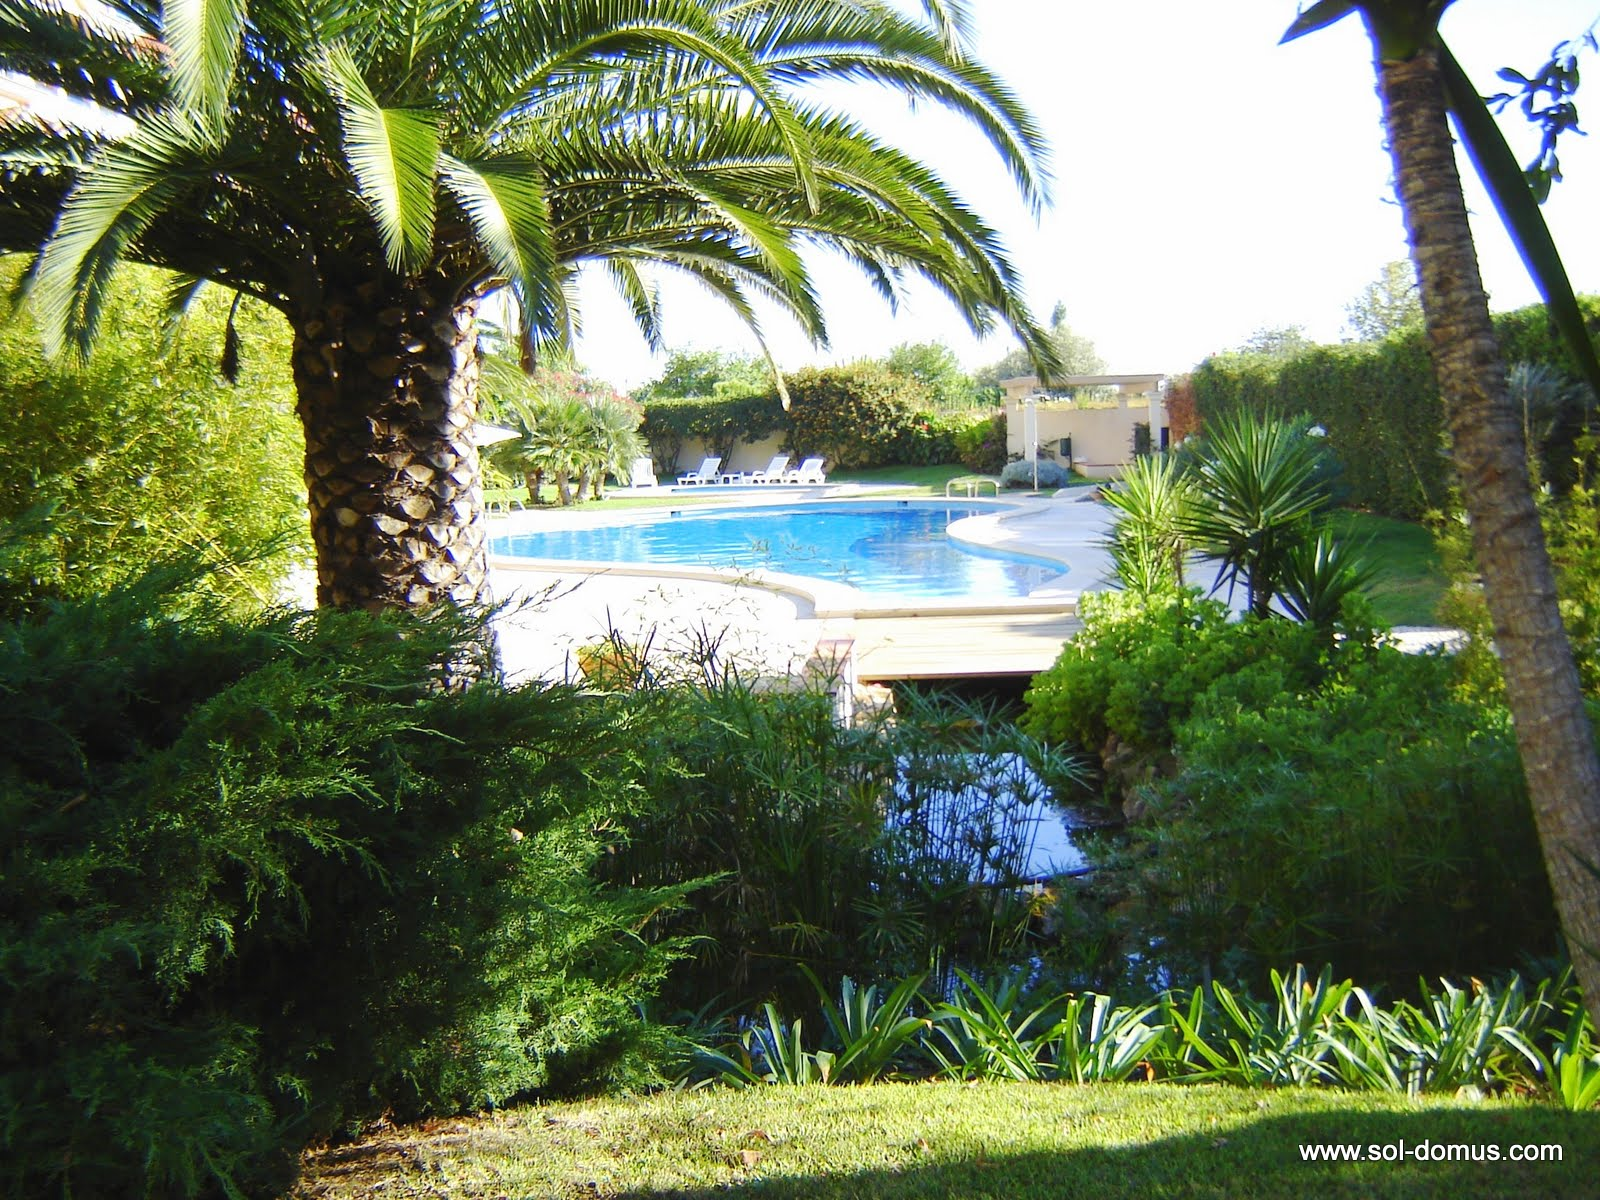 The swimming pool from the gardens